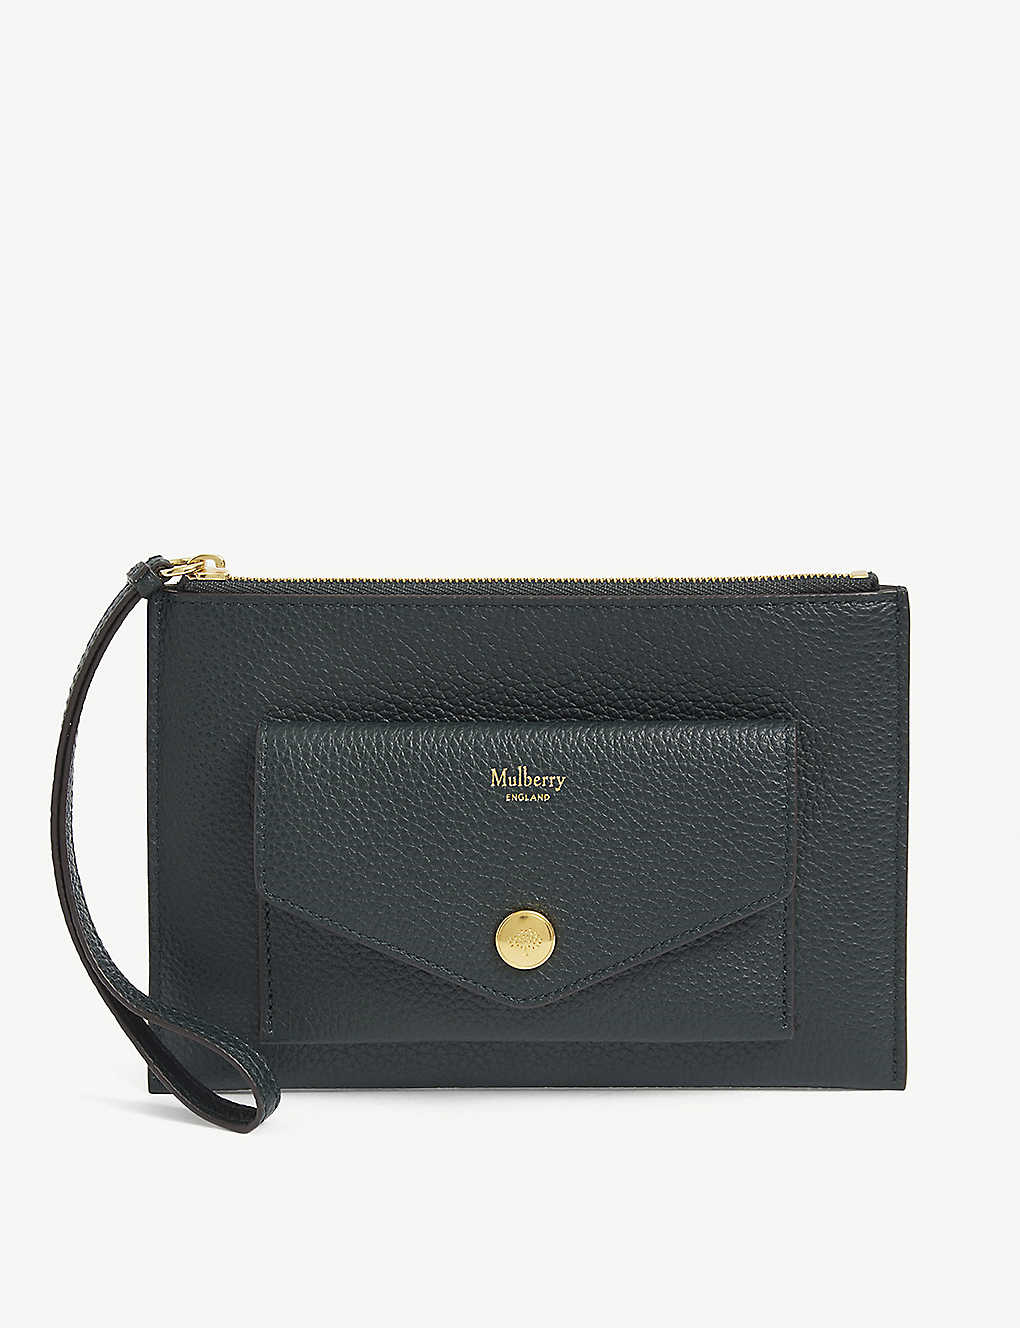 MULBERRY: Grained leather pocket wristlet